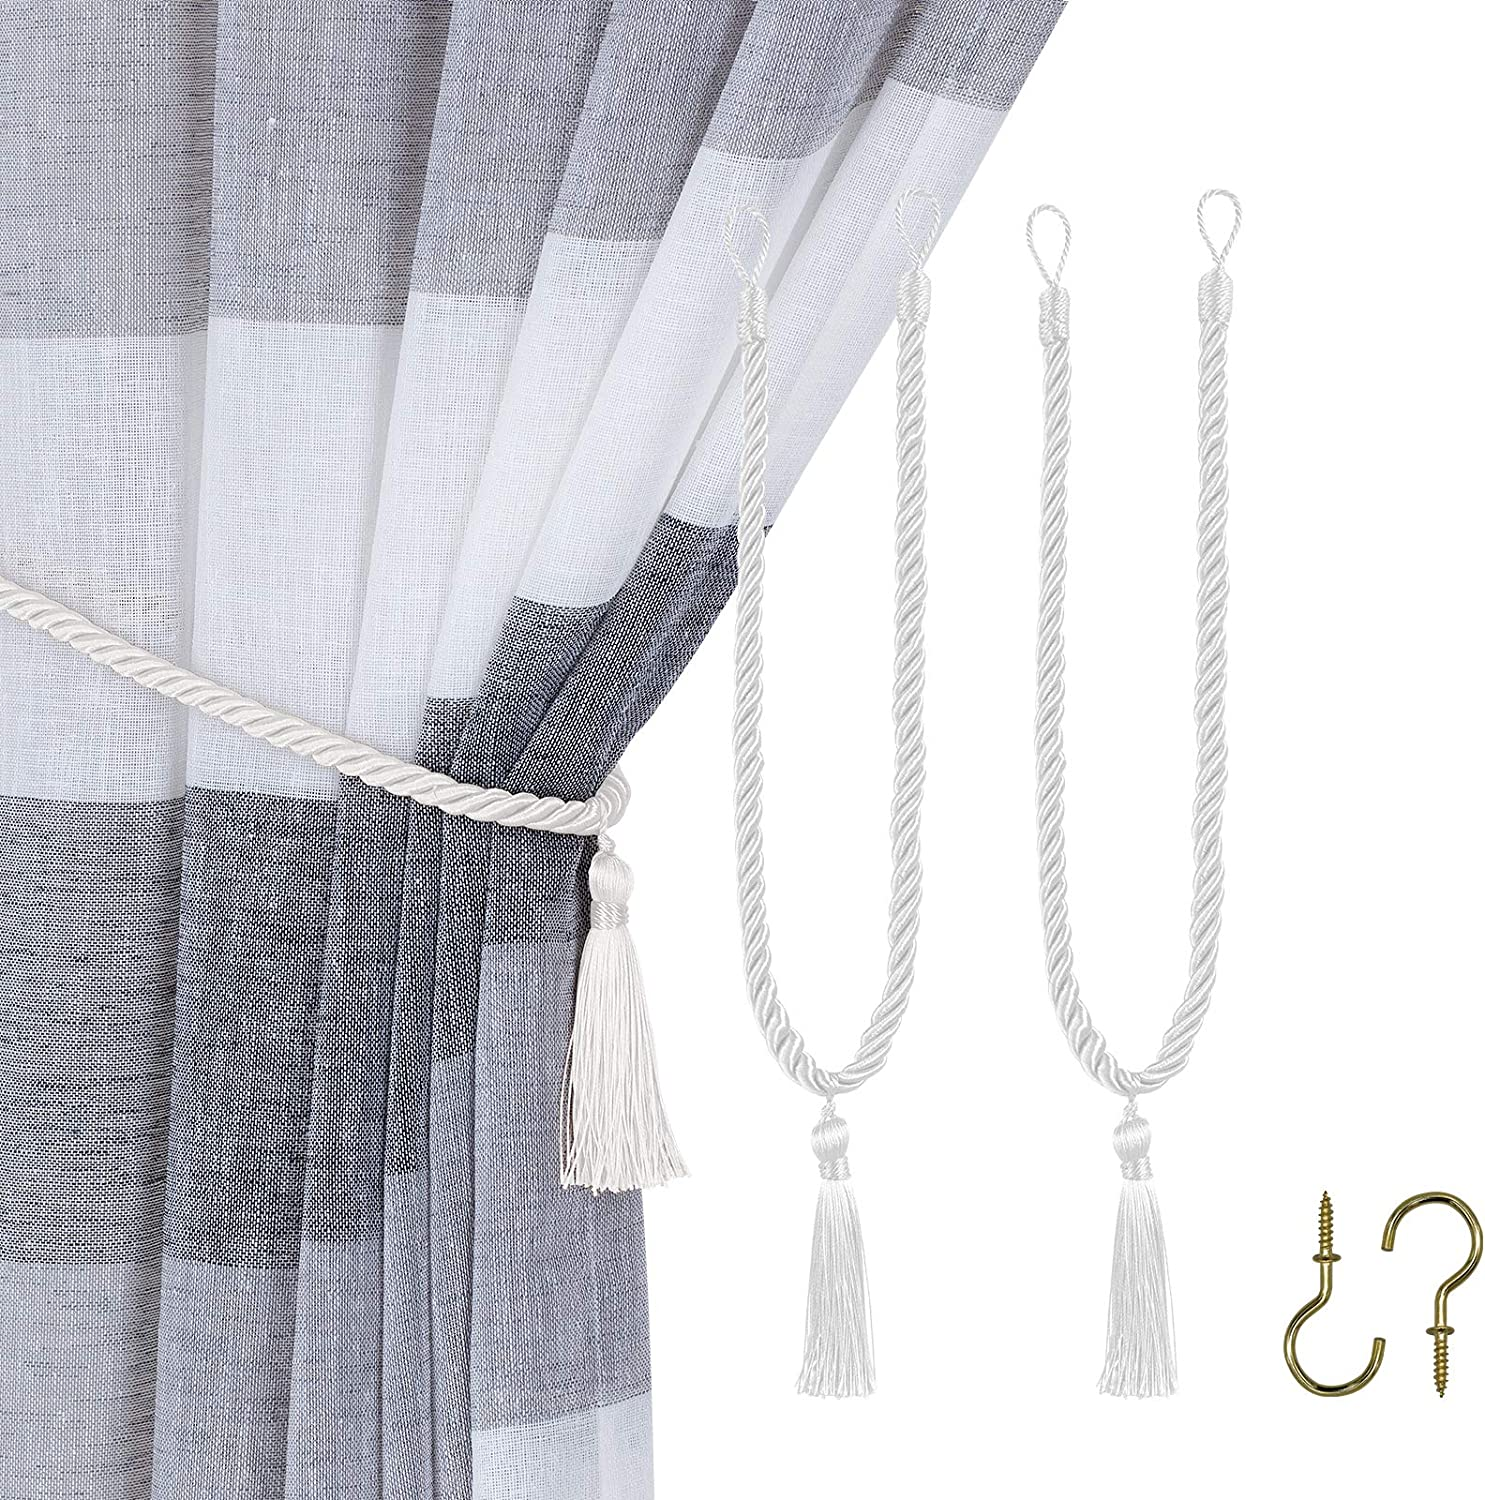 Home Queen Decorative Tassel Rope Tie Backs for Window Curtain, Hand Knitting Buckle Cord Drapery Holdbacks, Set of 2, Silver White